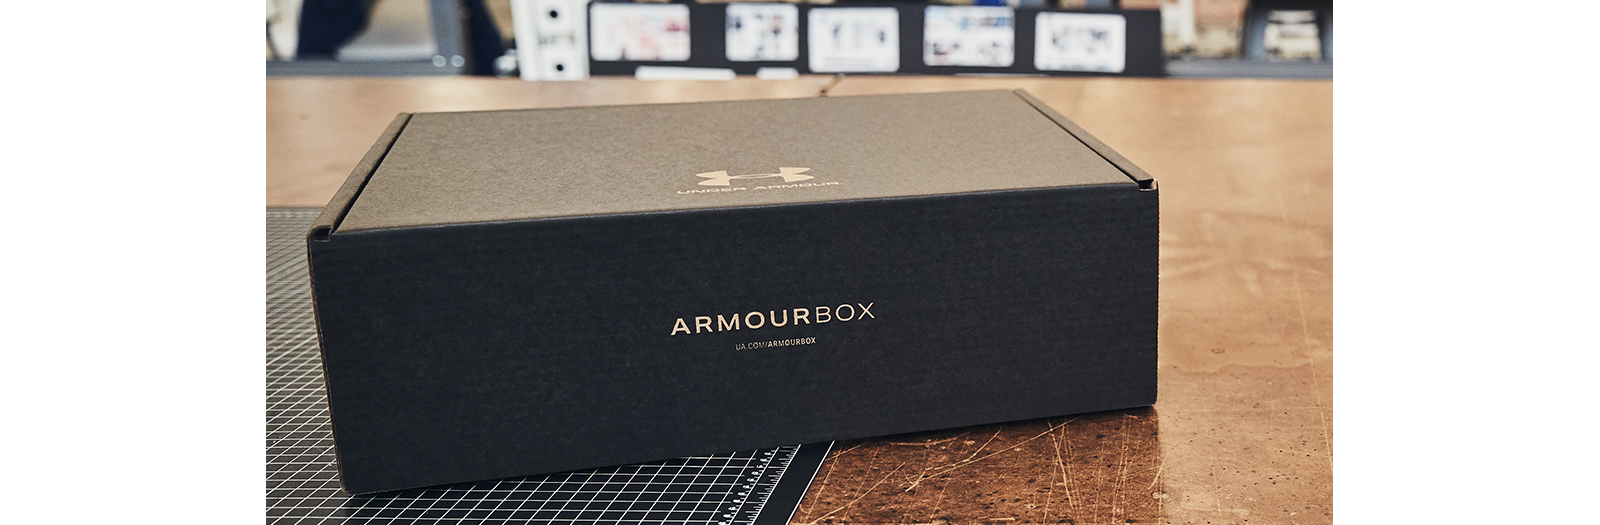 a904695936 ArmourBox: A Personalized Subscription Box Service by Under Armour | US